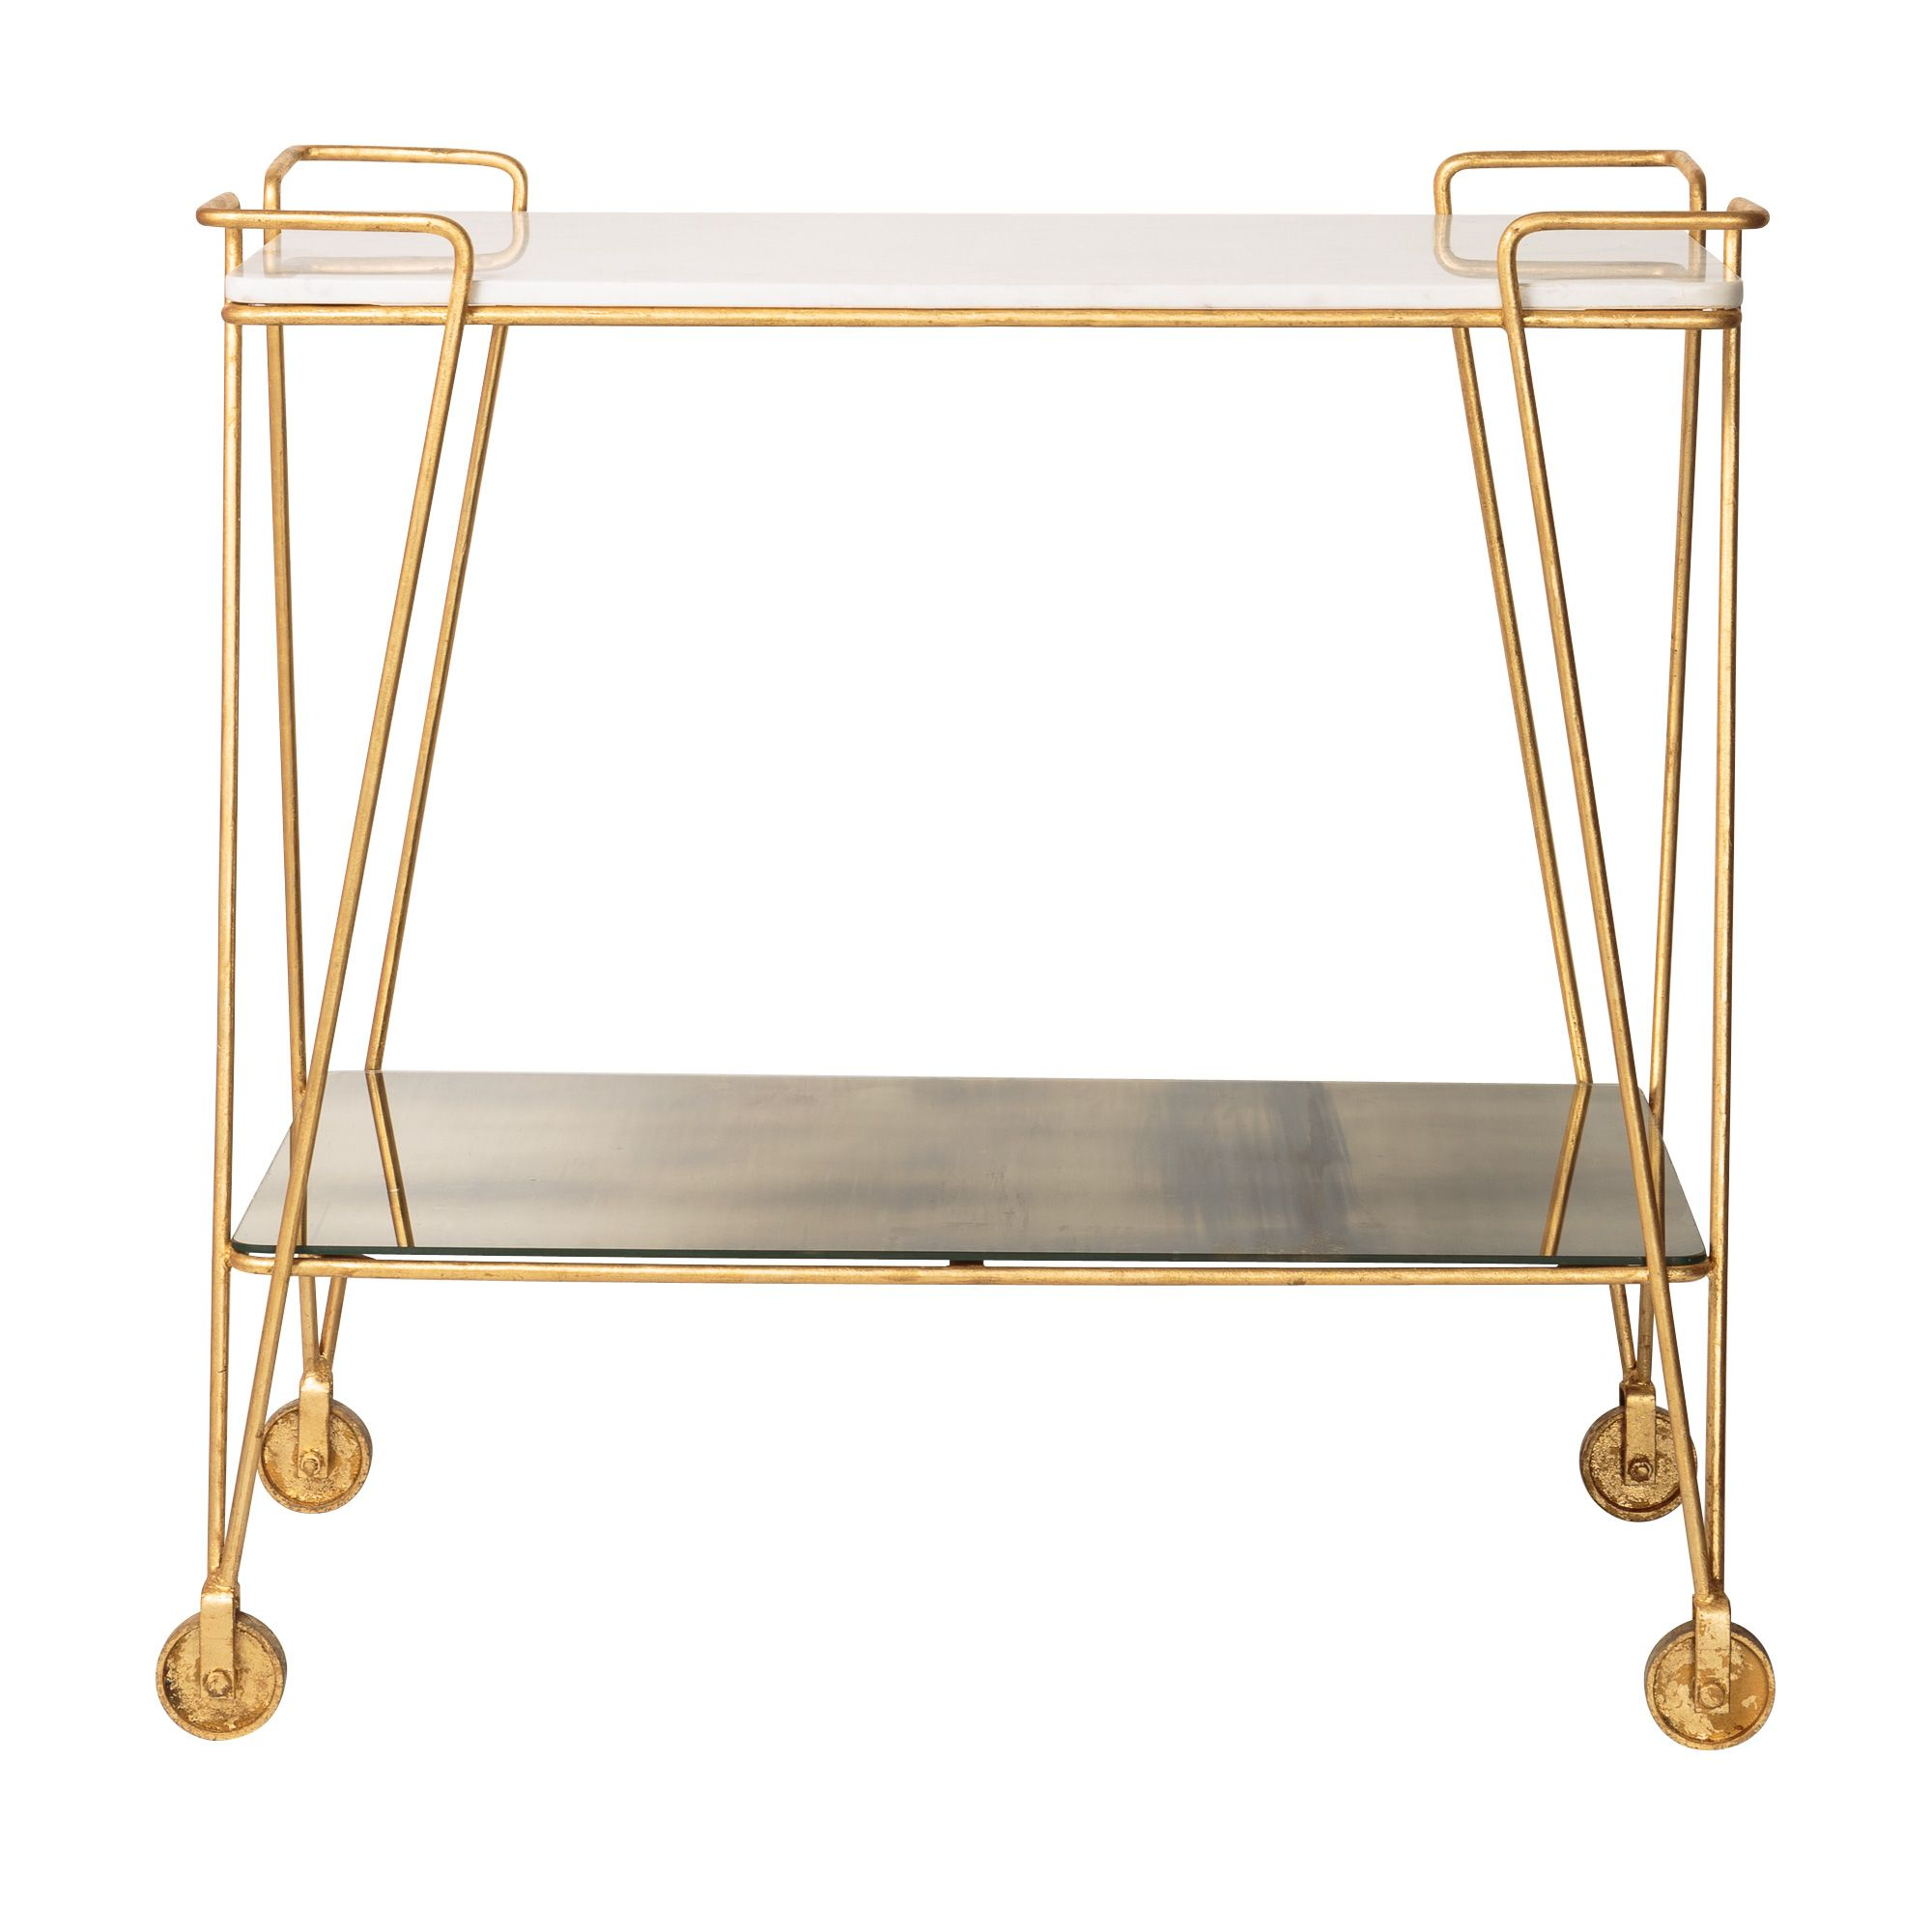 Buy Luxe Drinks Trolley from Oliver Bonas | Home | Pinterest ...